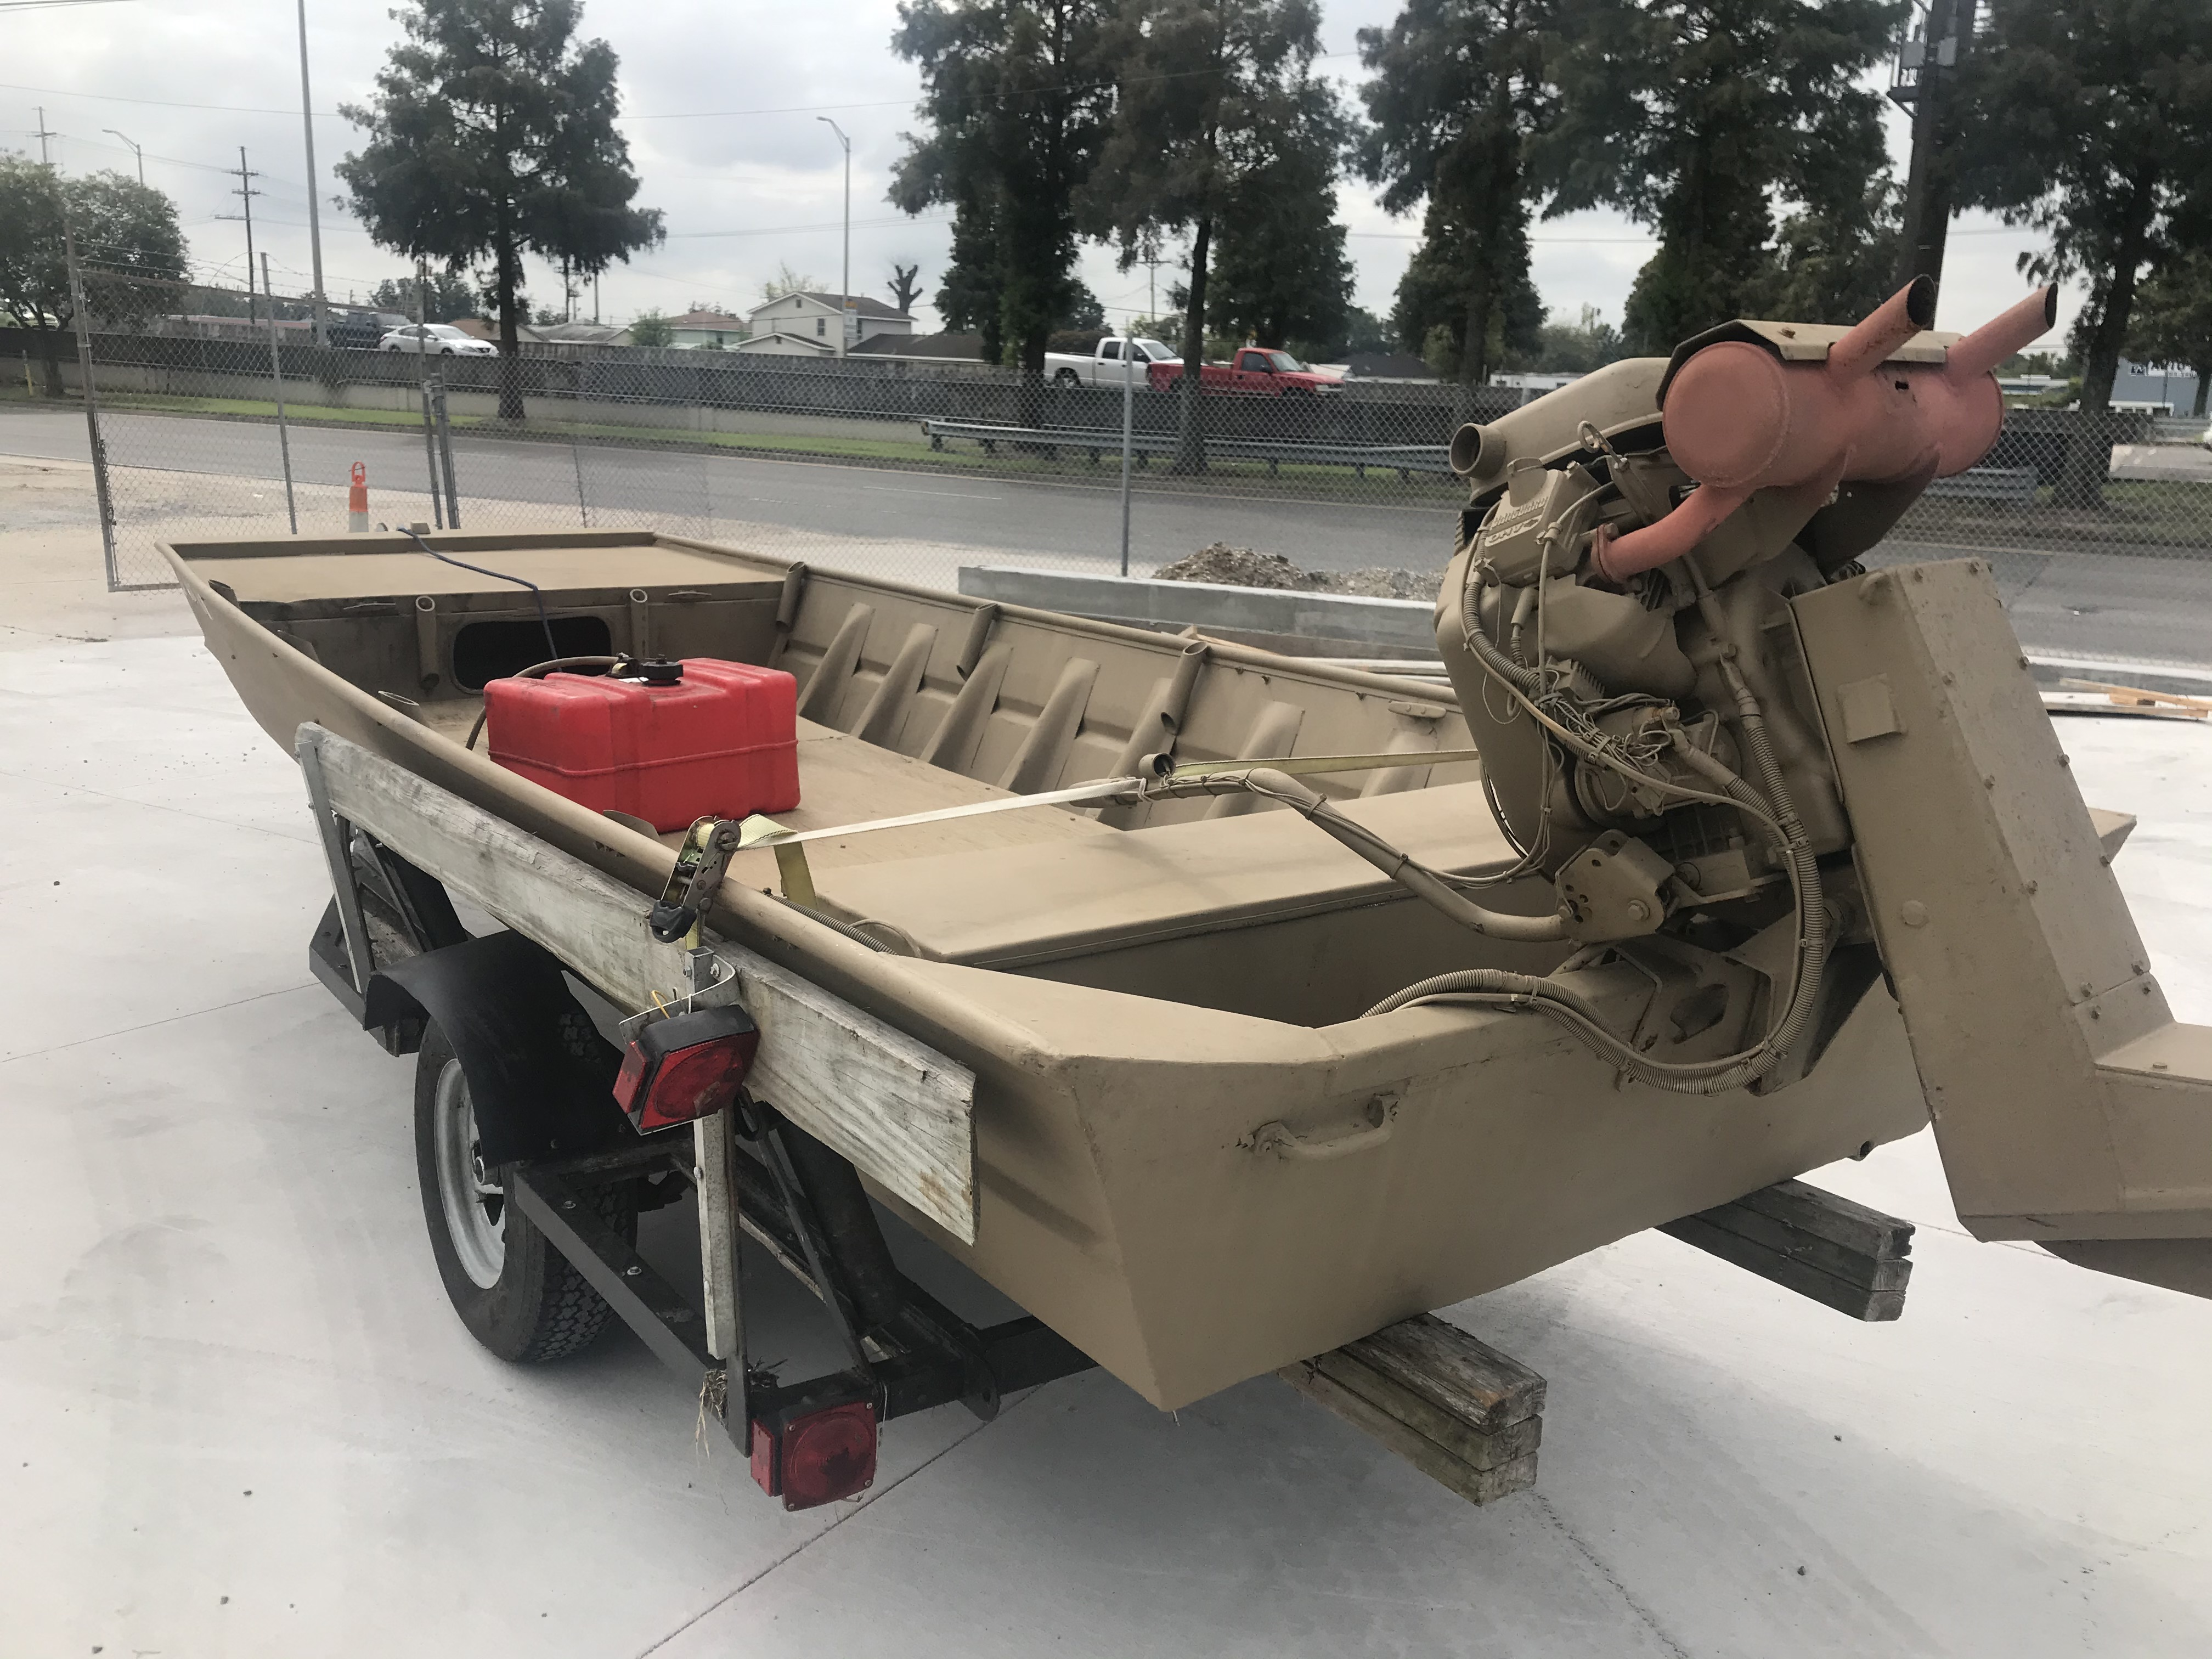 2009 Weldbuilt boat for sale, model of the boat is 17 & Image # 4 of 6